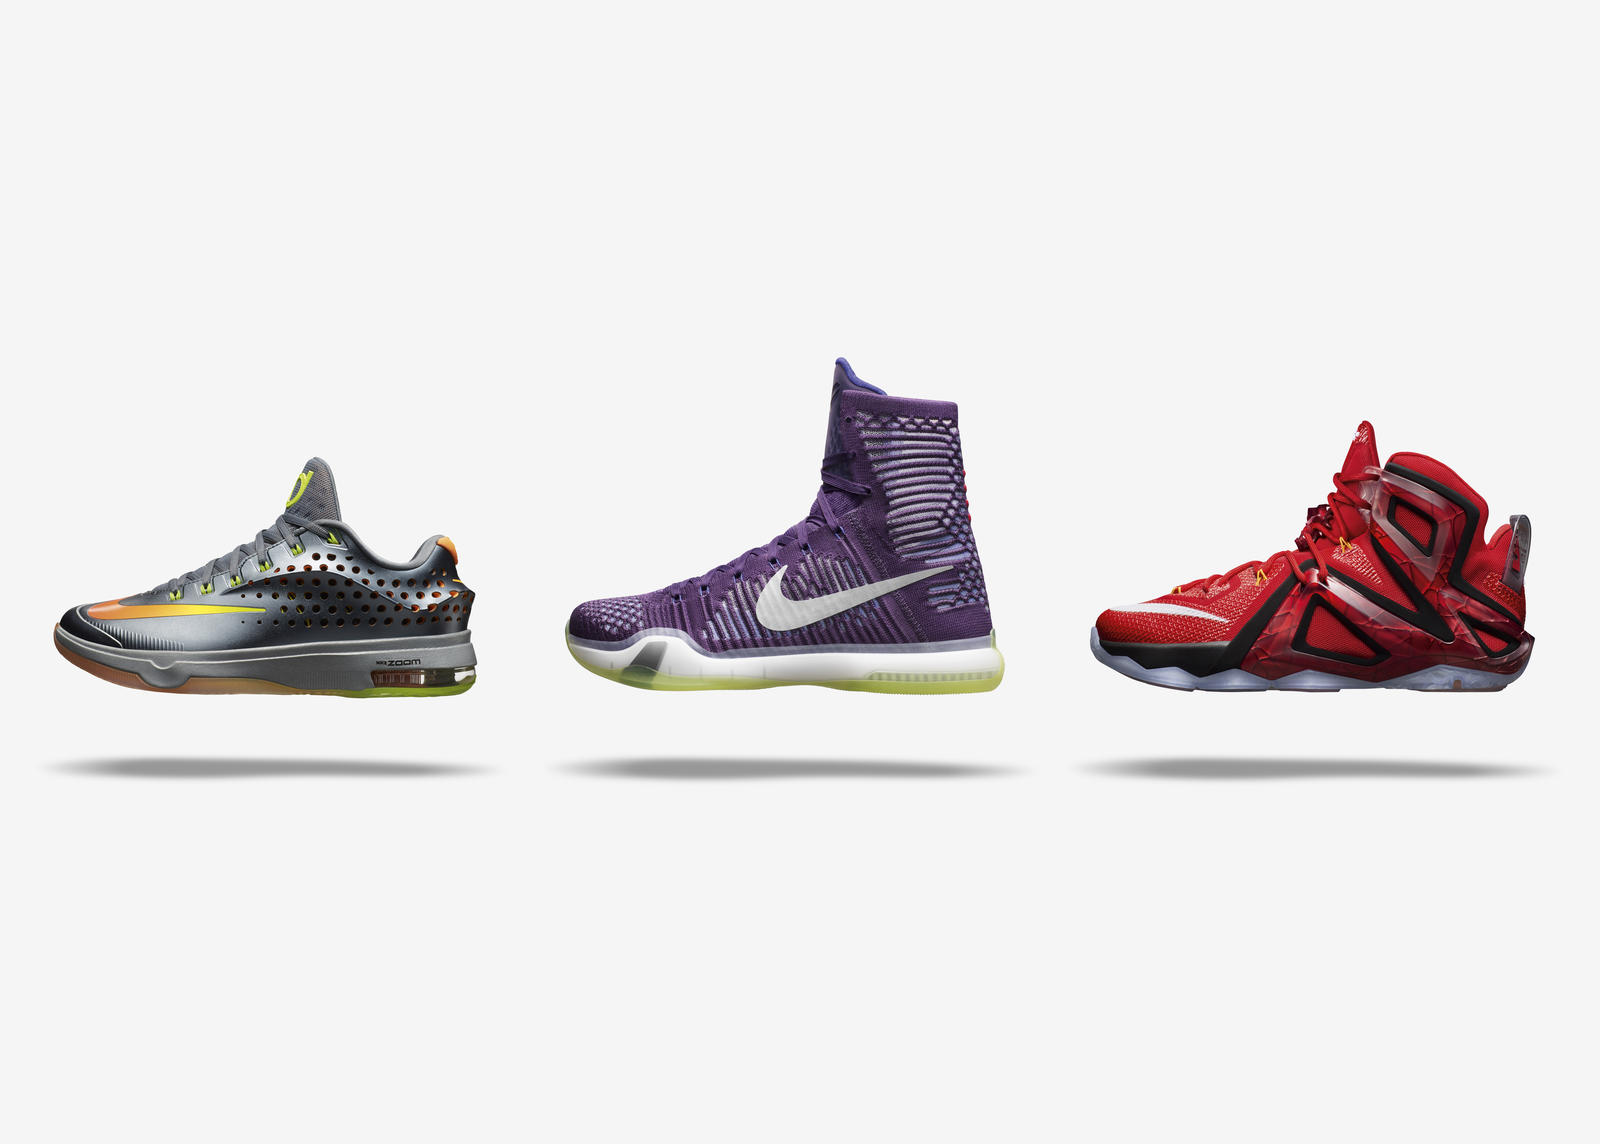 premium performance nike basketball elite series elevates